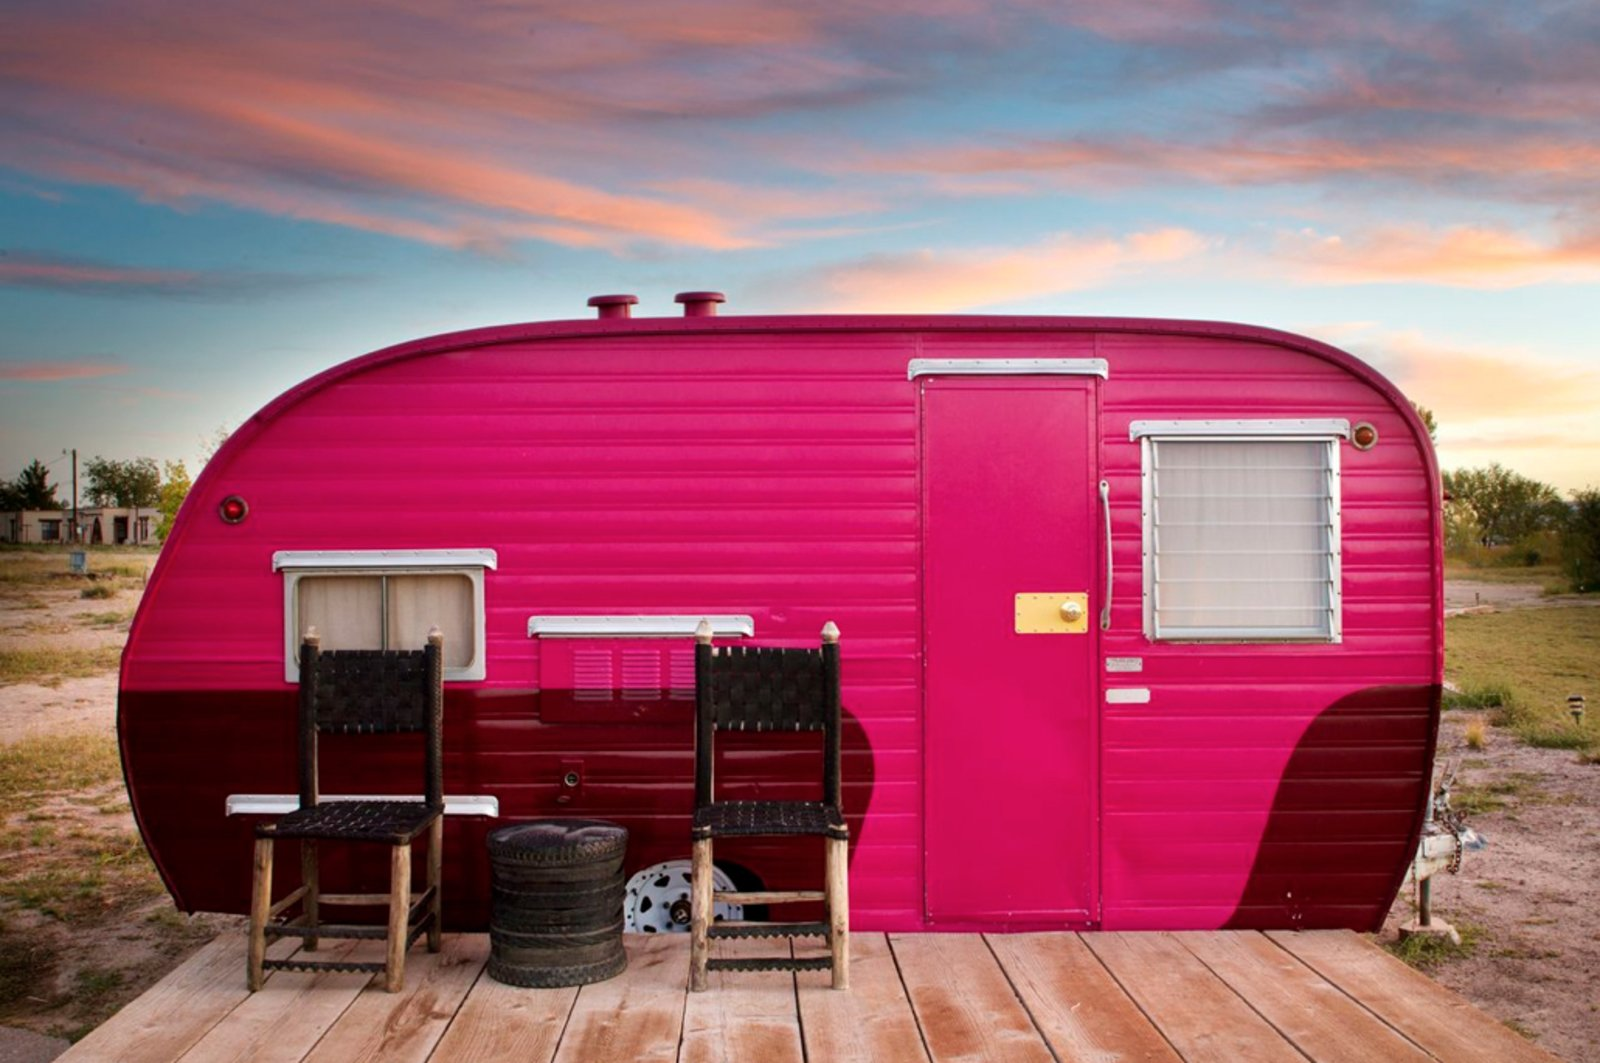 Photo 8 of 8 in 7 Vintage-Inspired Trailer Parks, Airstreams and All